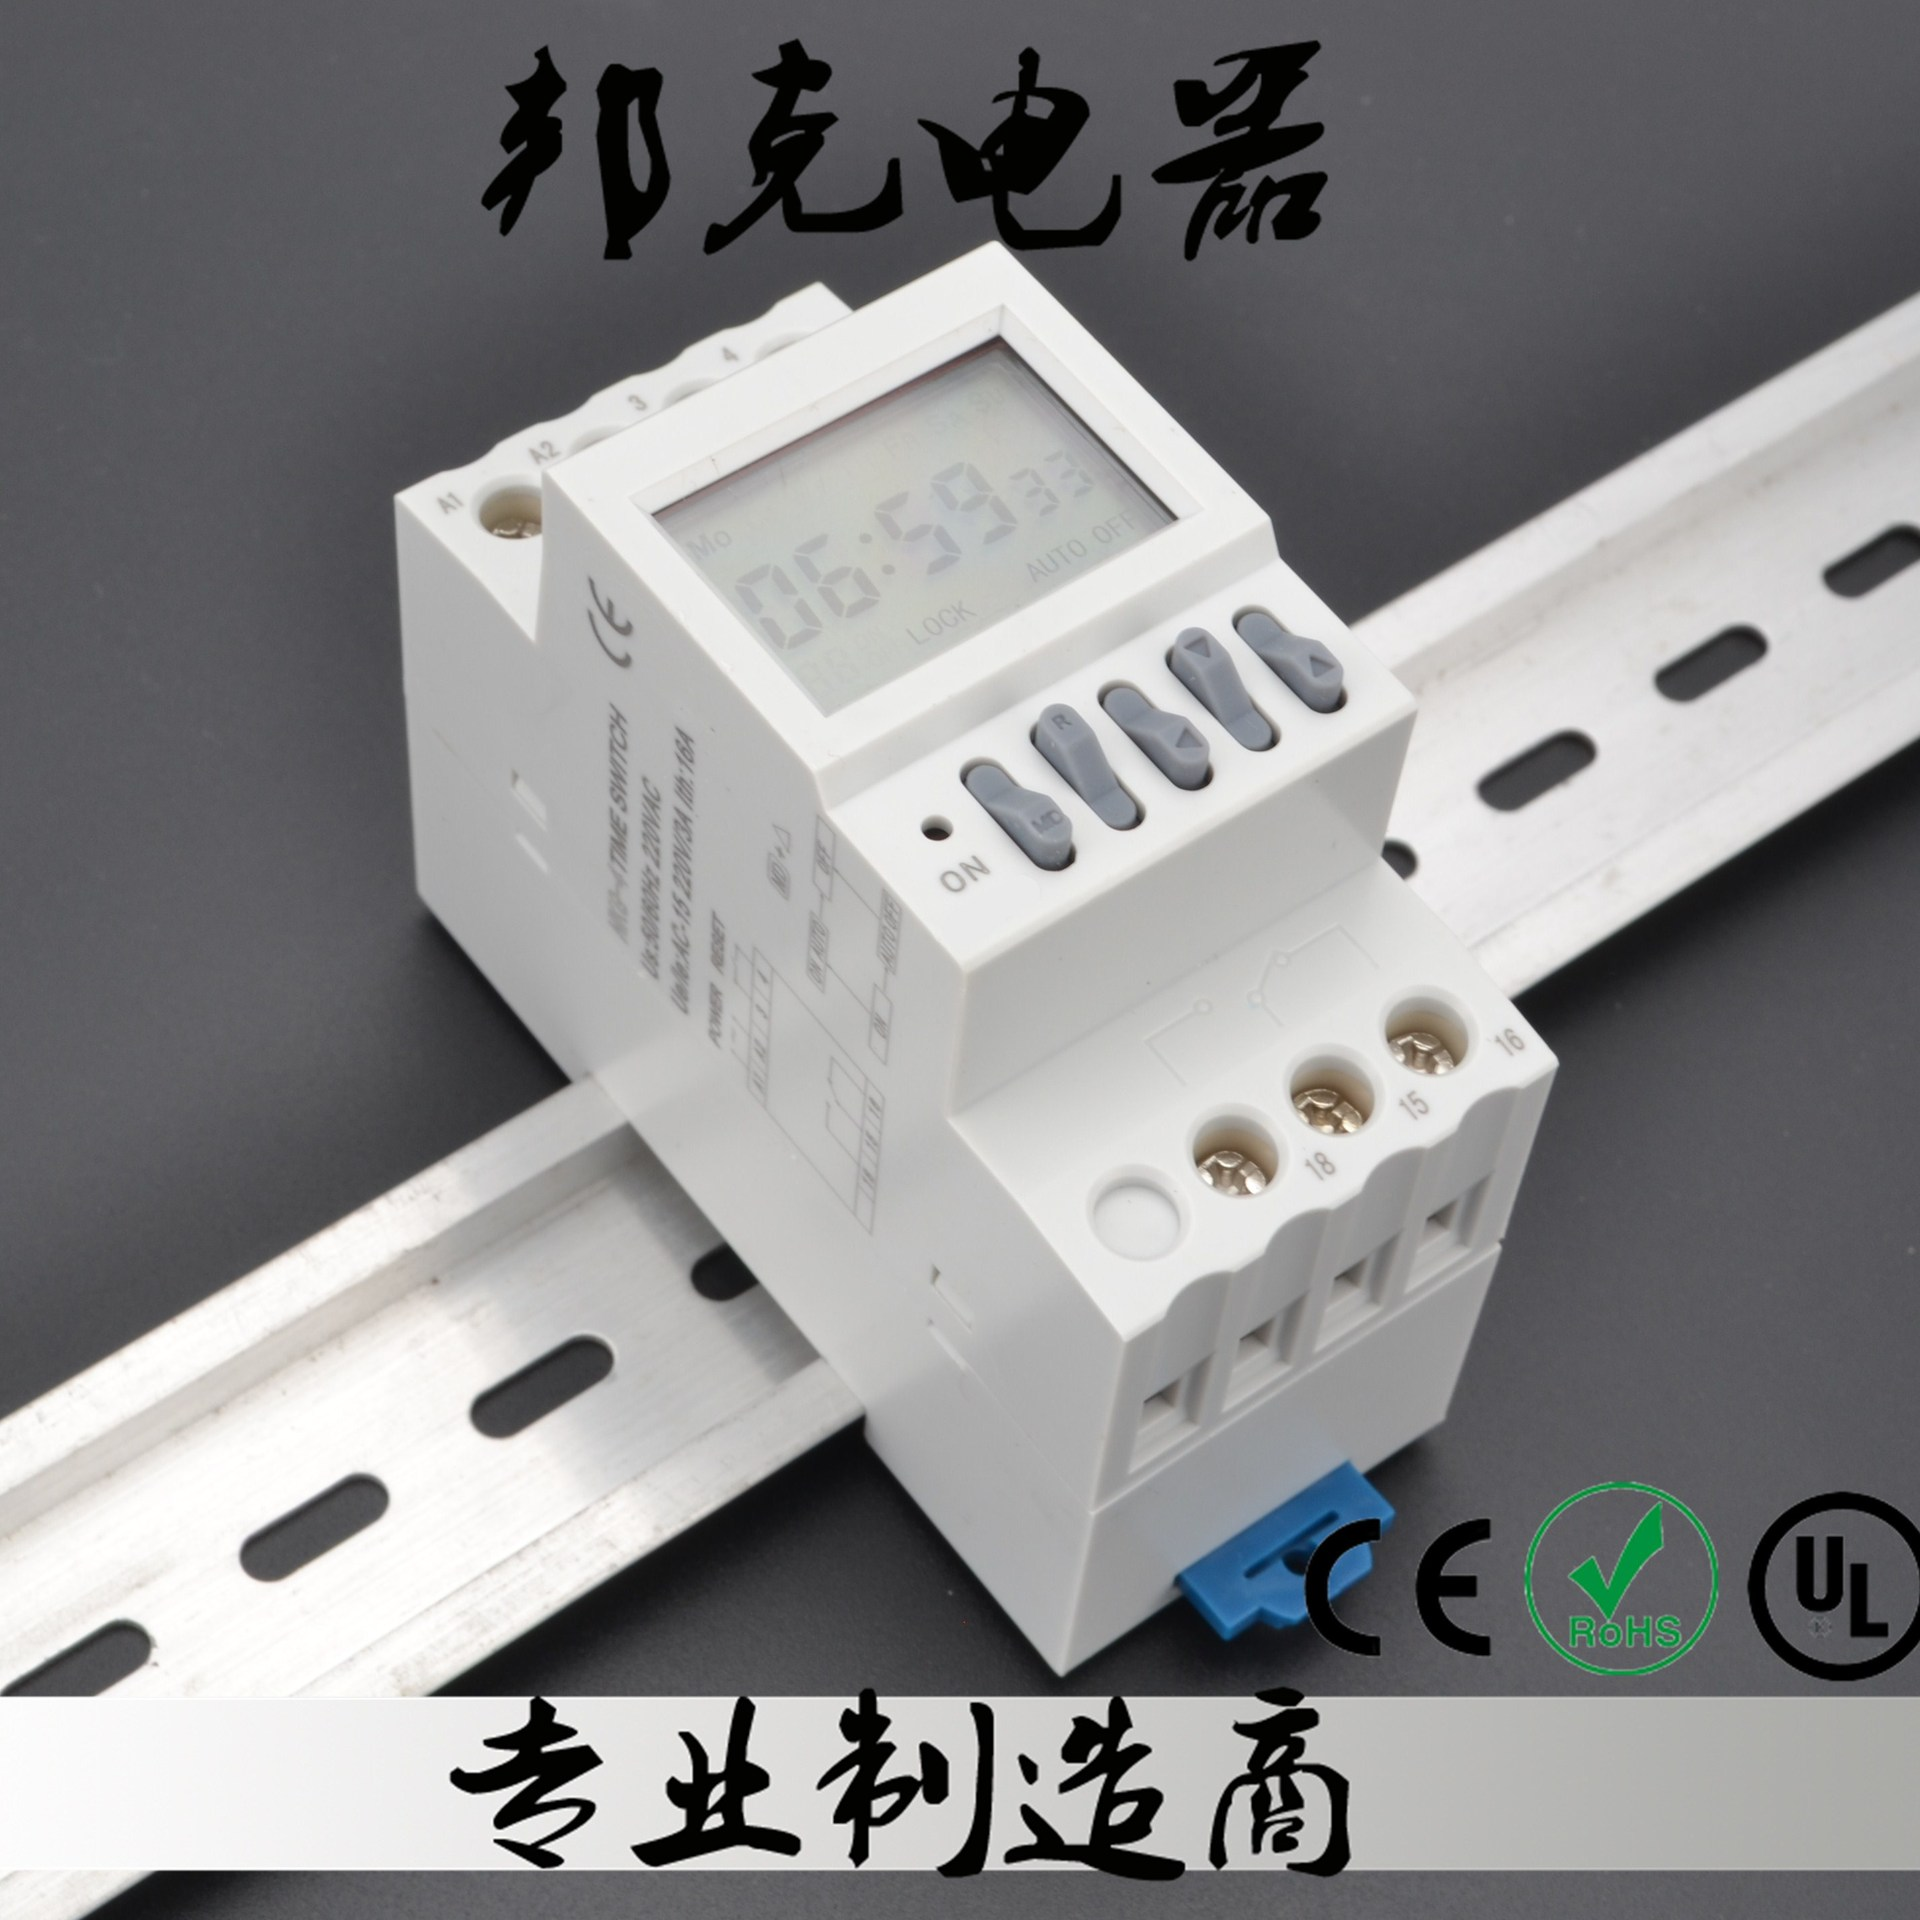 цена на NKG-5 LCD infinite cycle timer Microcomputer Programmable Timer Din Rail Street Lamp Controller Digital Time Switch din Relay